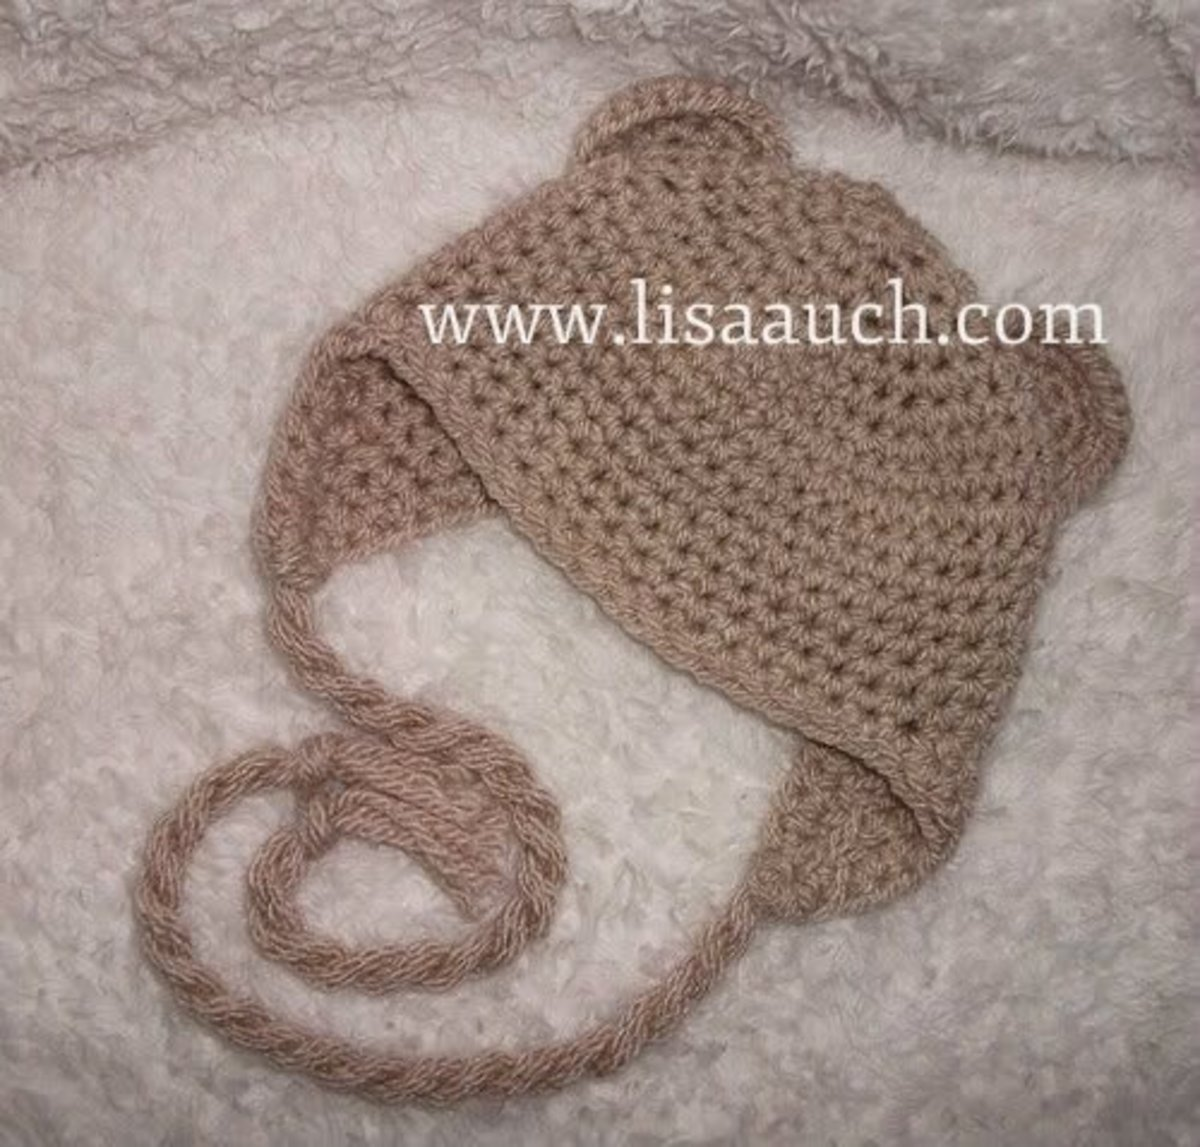 Make a baby animal hat with ears and earflaps to keep baby cosy.